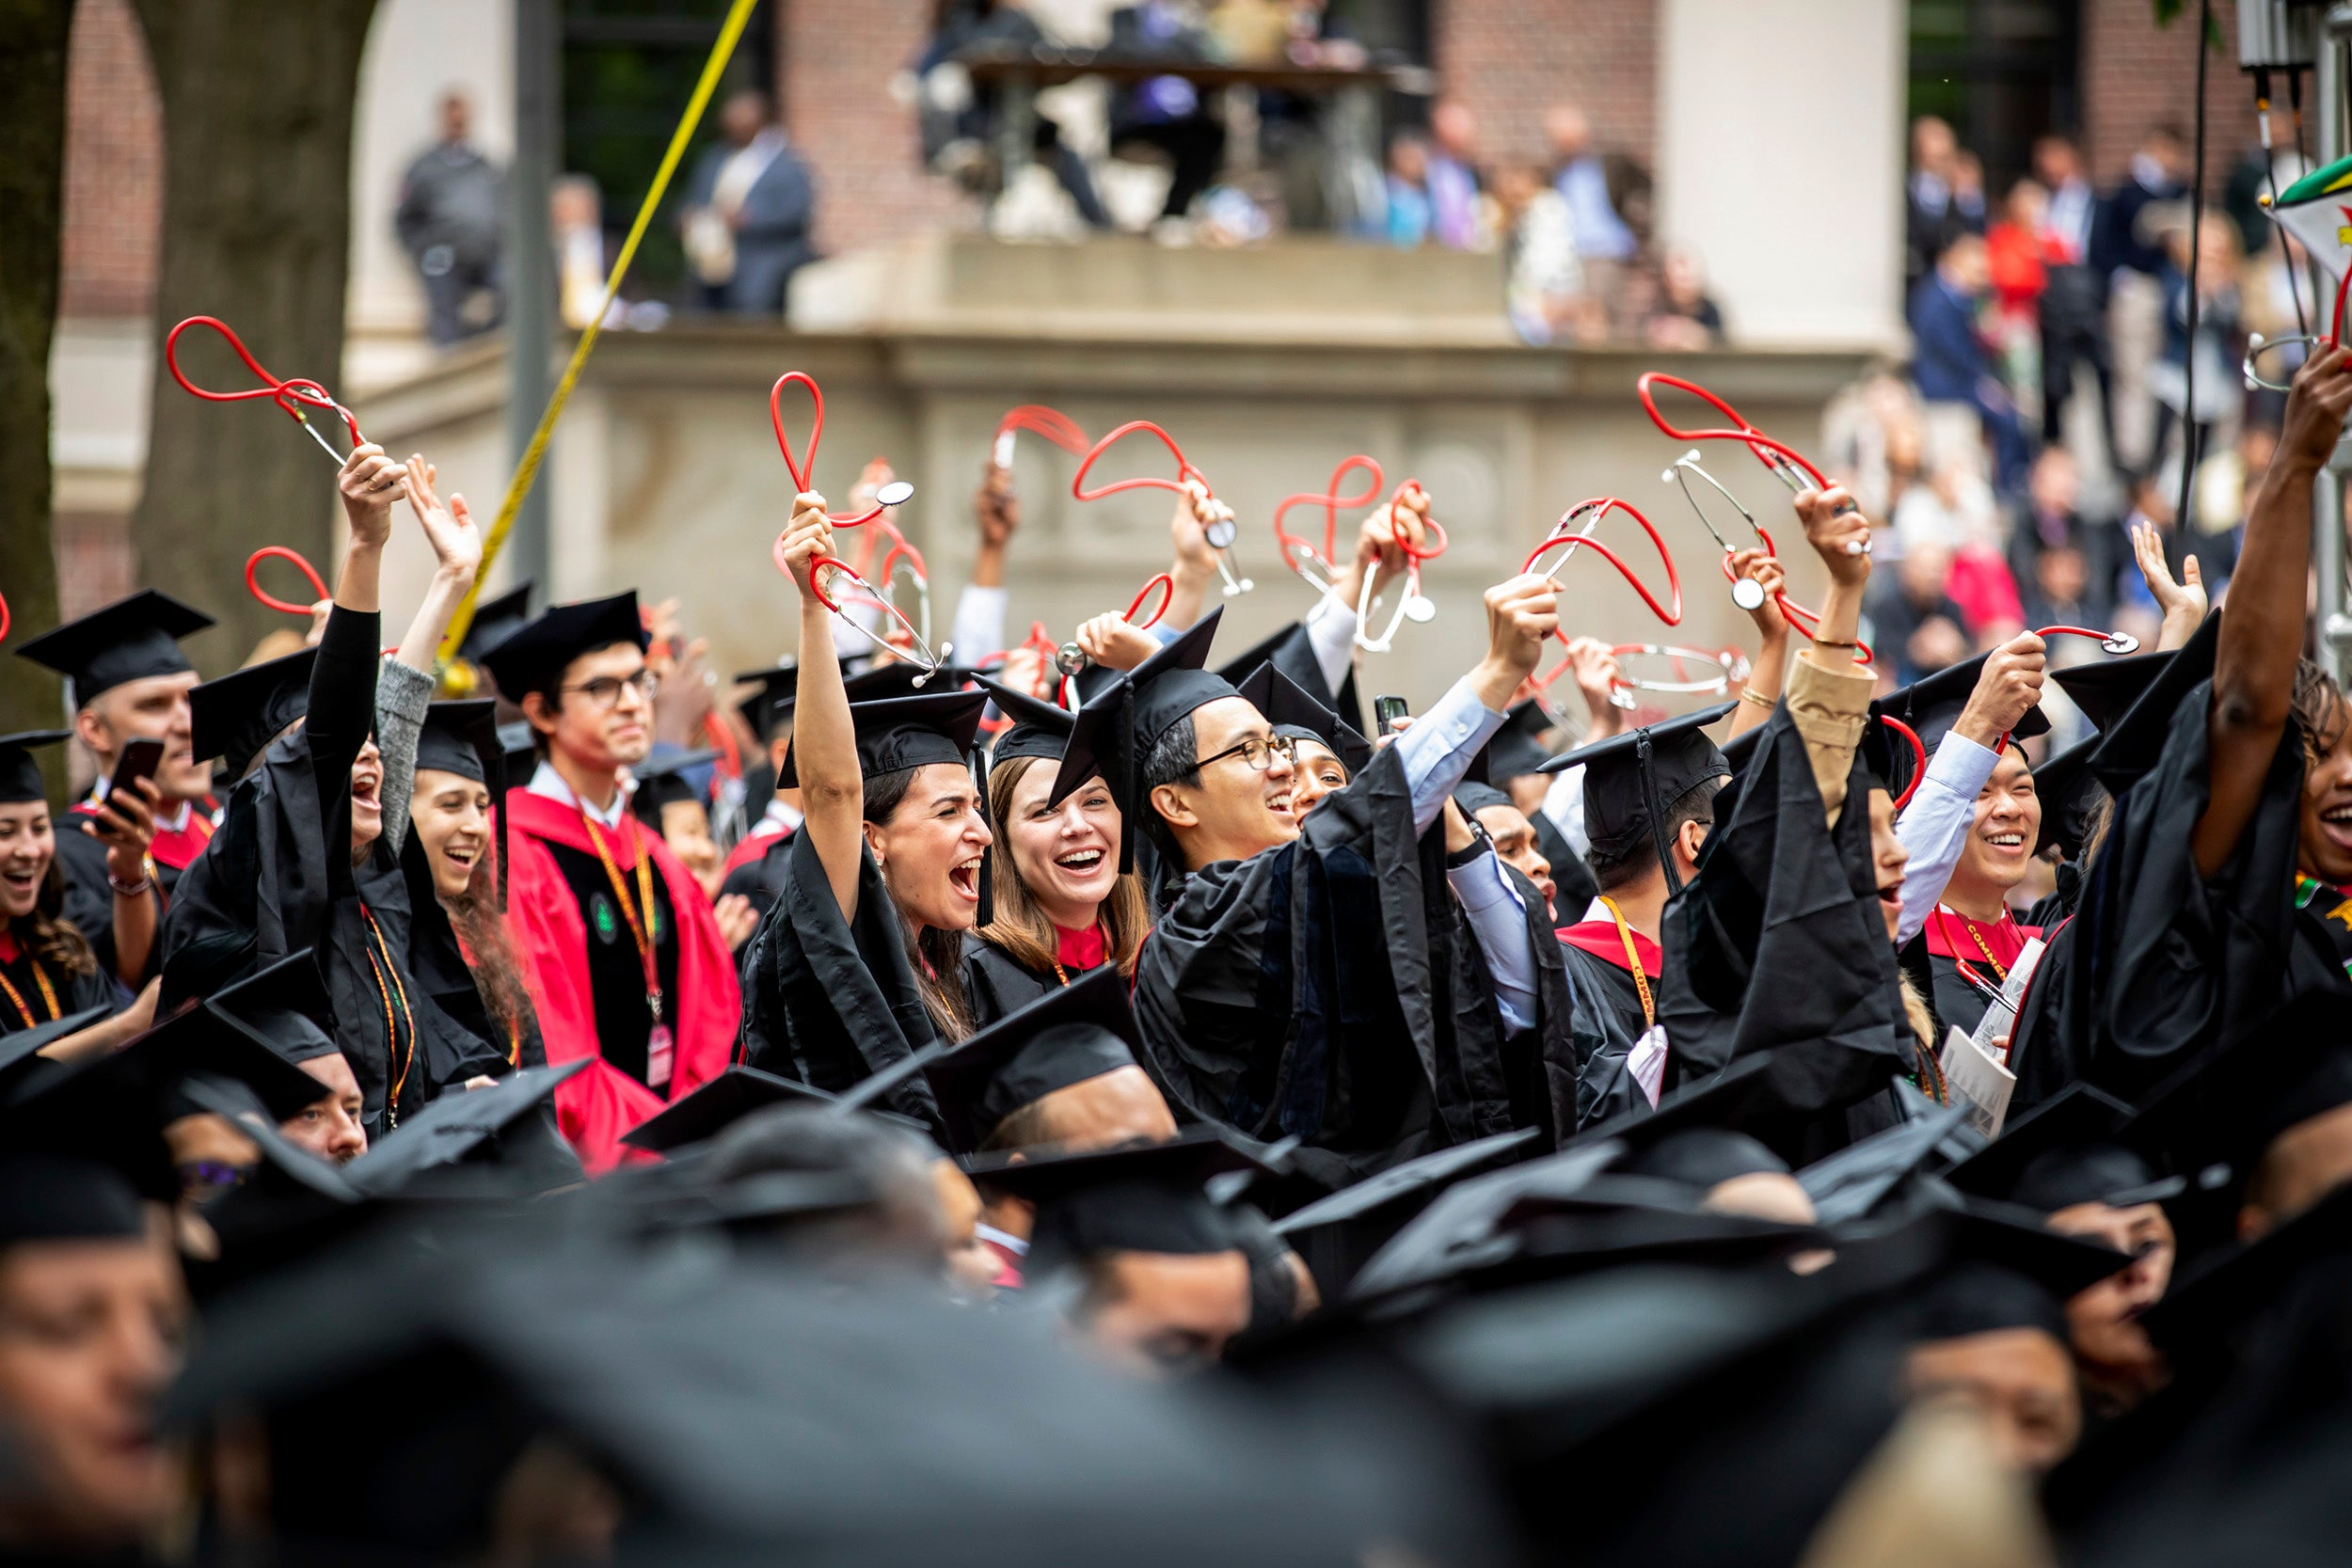 Graduates from Harvard Medical School wave stethoscopes in the air.